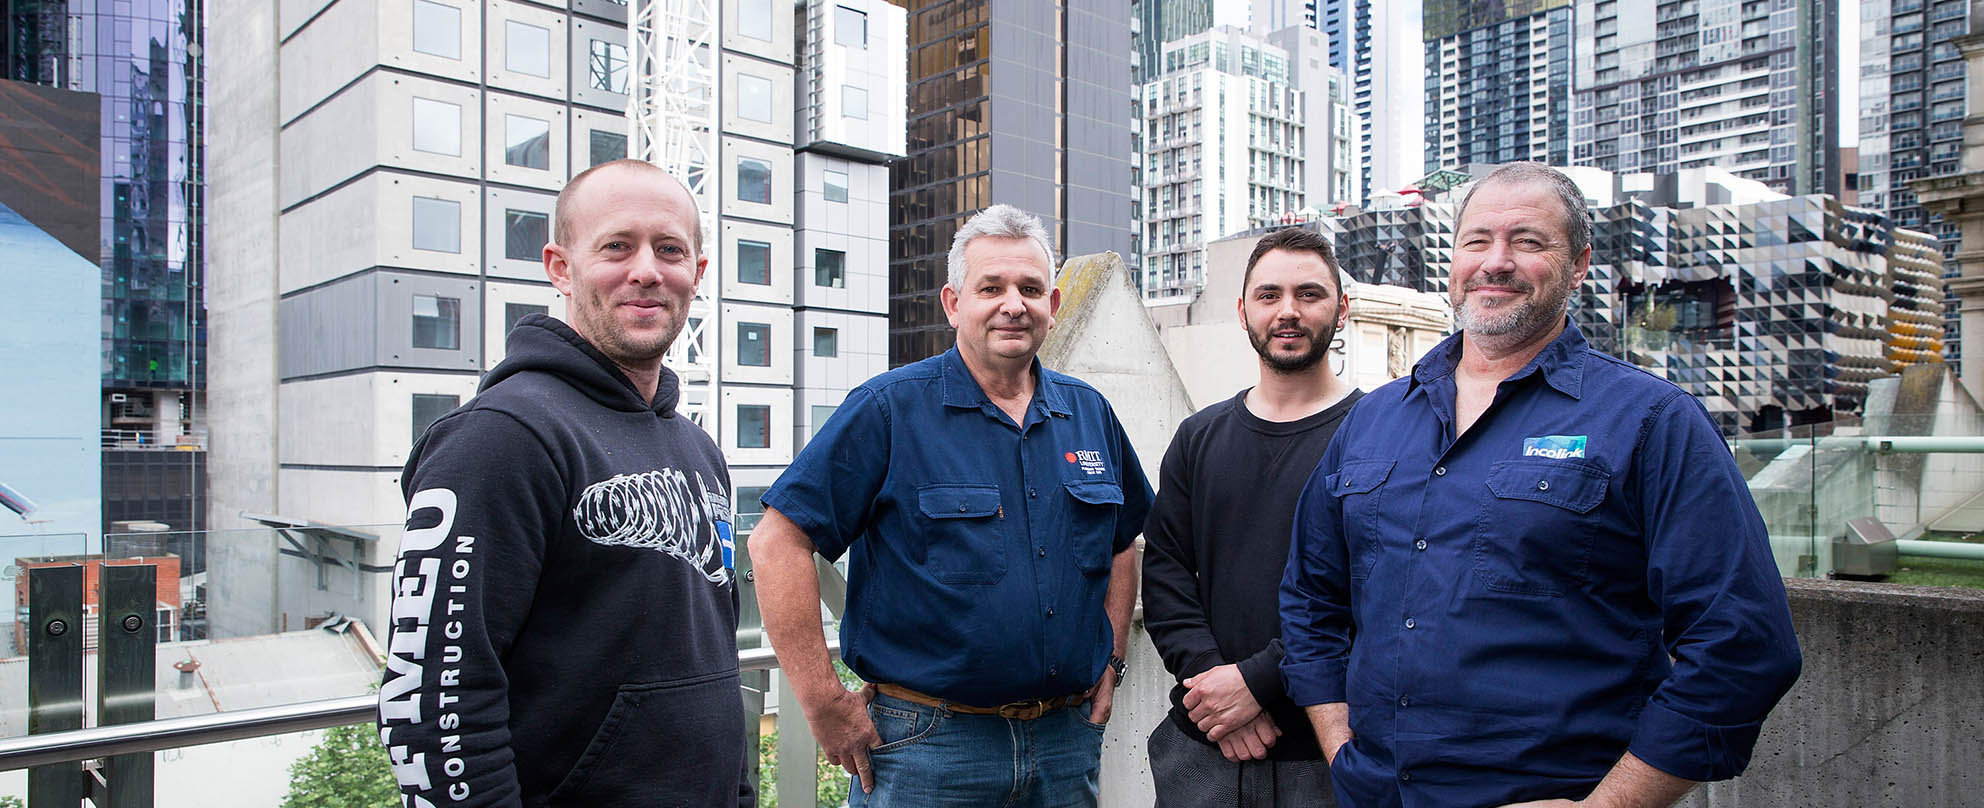 Four men standing smiling on a city balcony with skyscrapers and construction work behind them